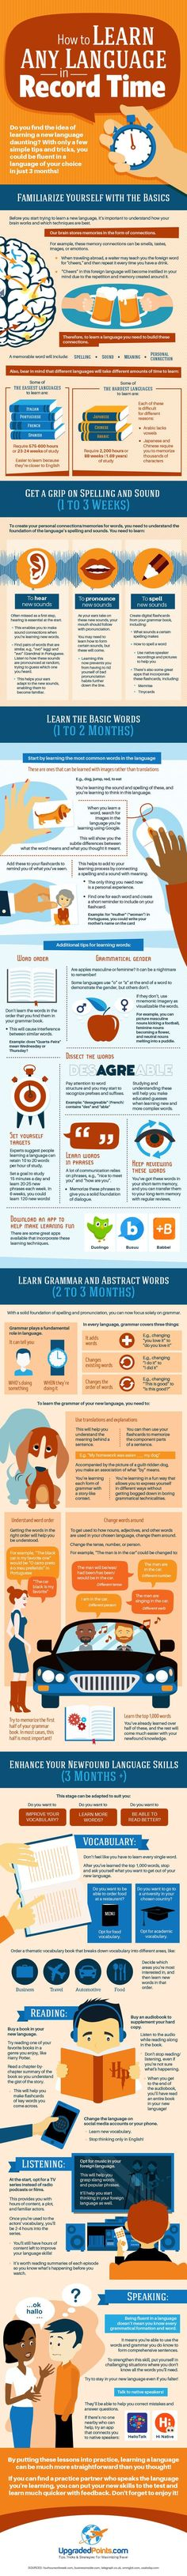 Learn a Language Fast